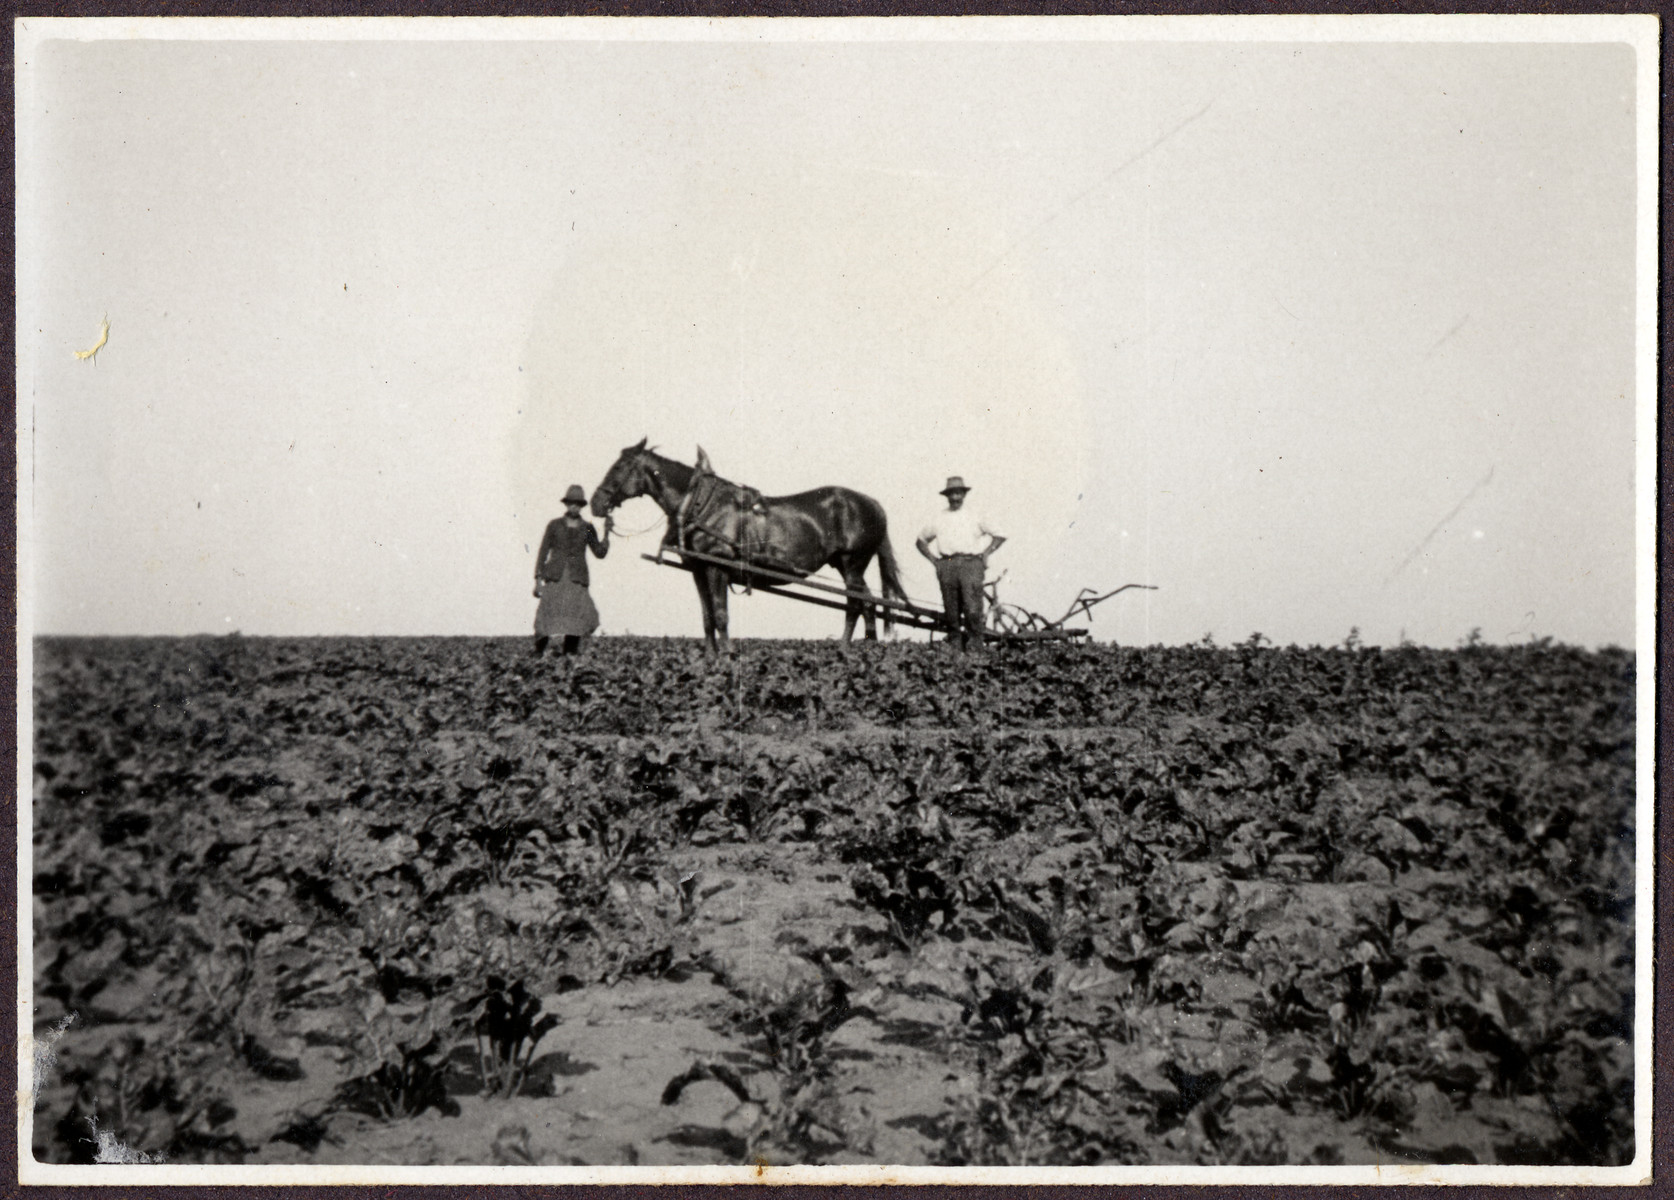 A horse pulls a plow on a farm in Burgenland operated by Ludwig Engel.